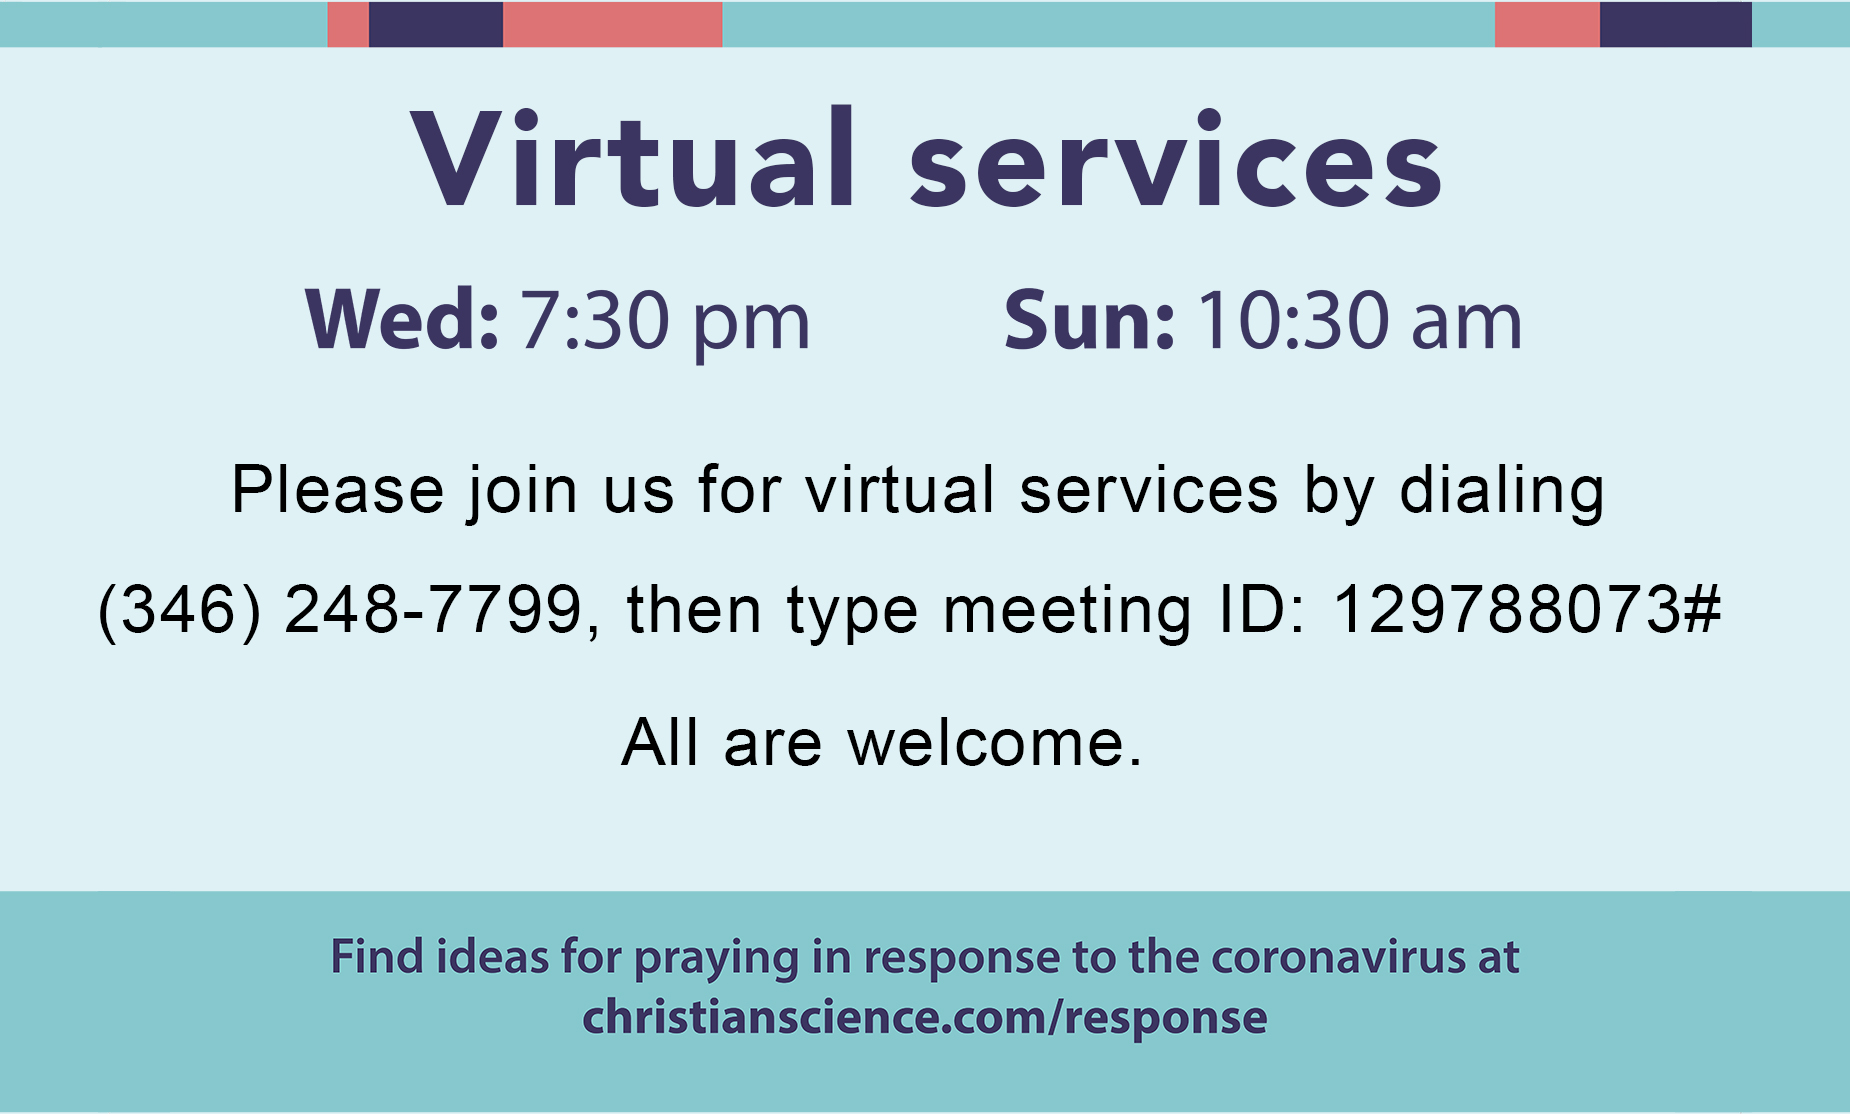 Webinar on Christian Science healing